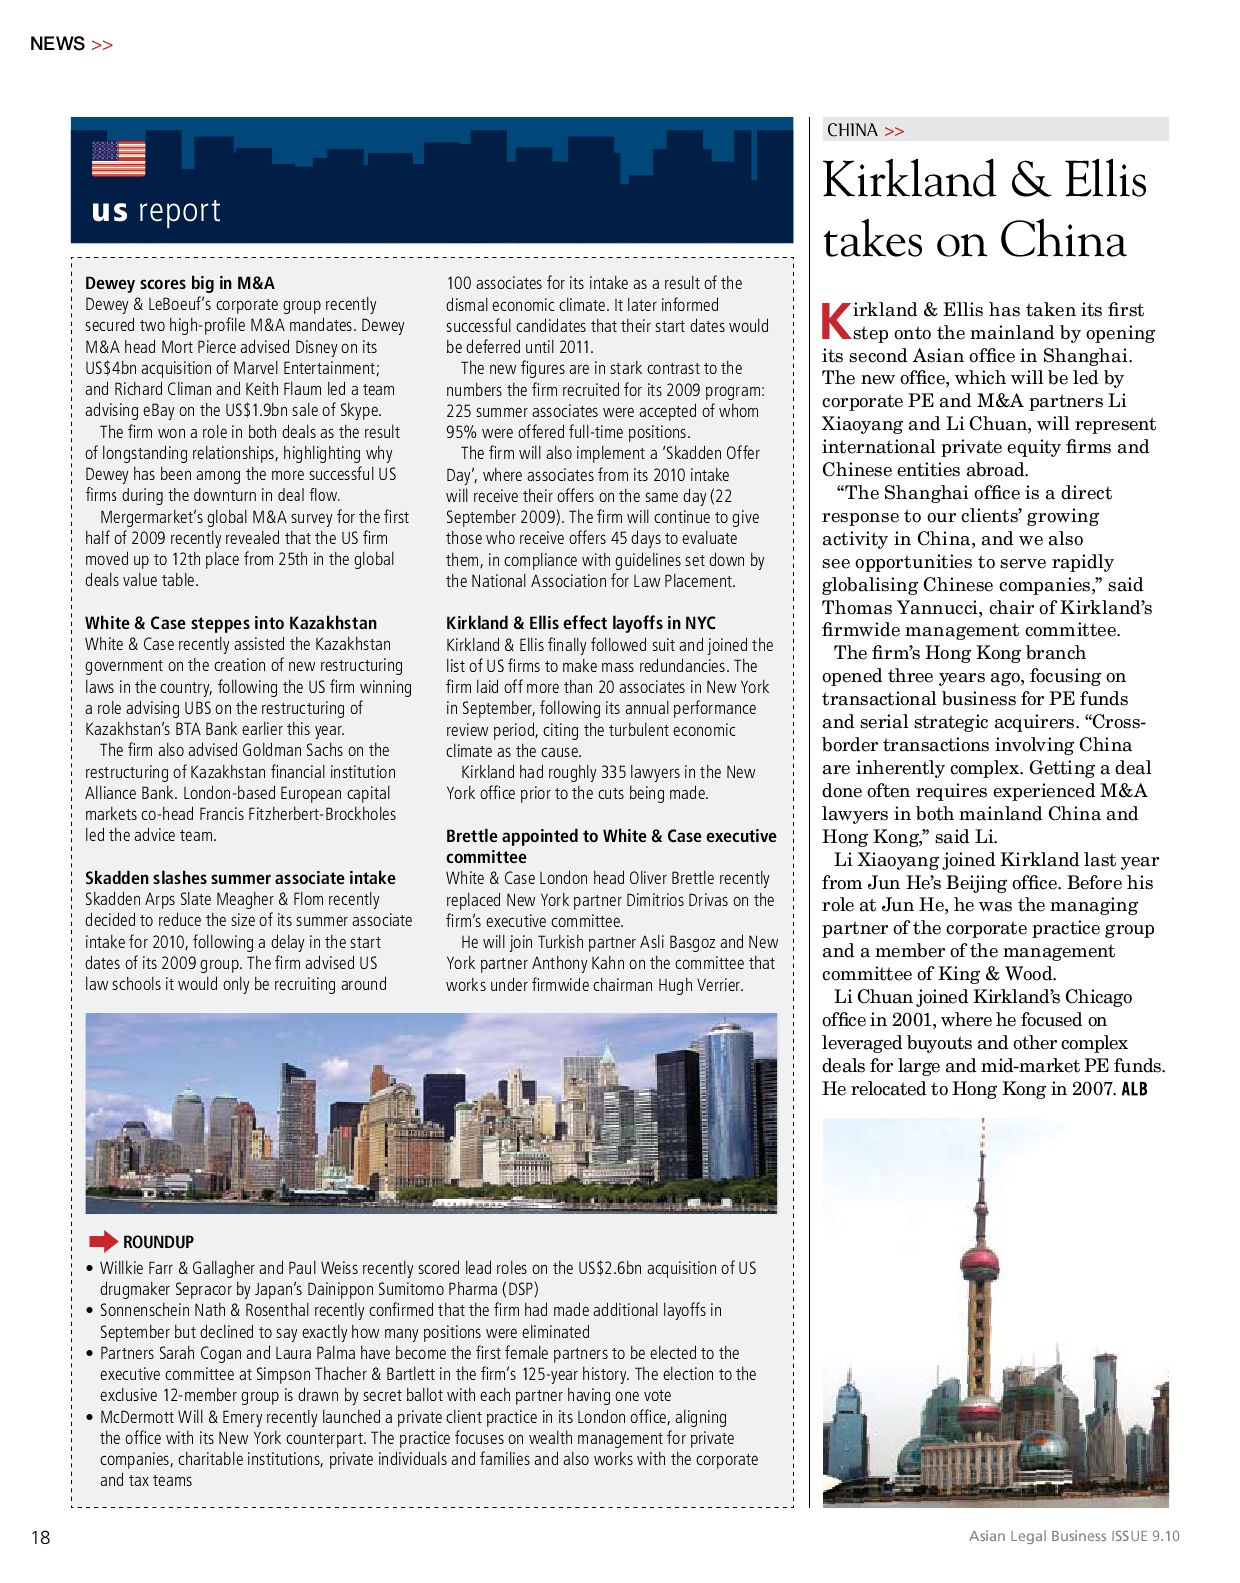 Asian Legal Business (North Asia) Oct 2009